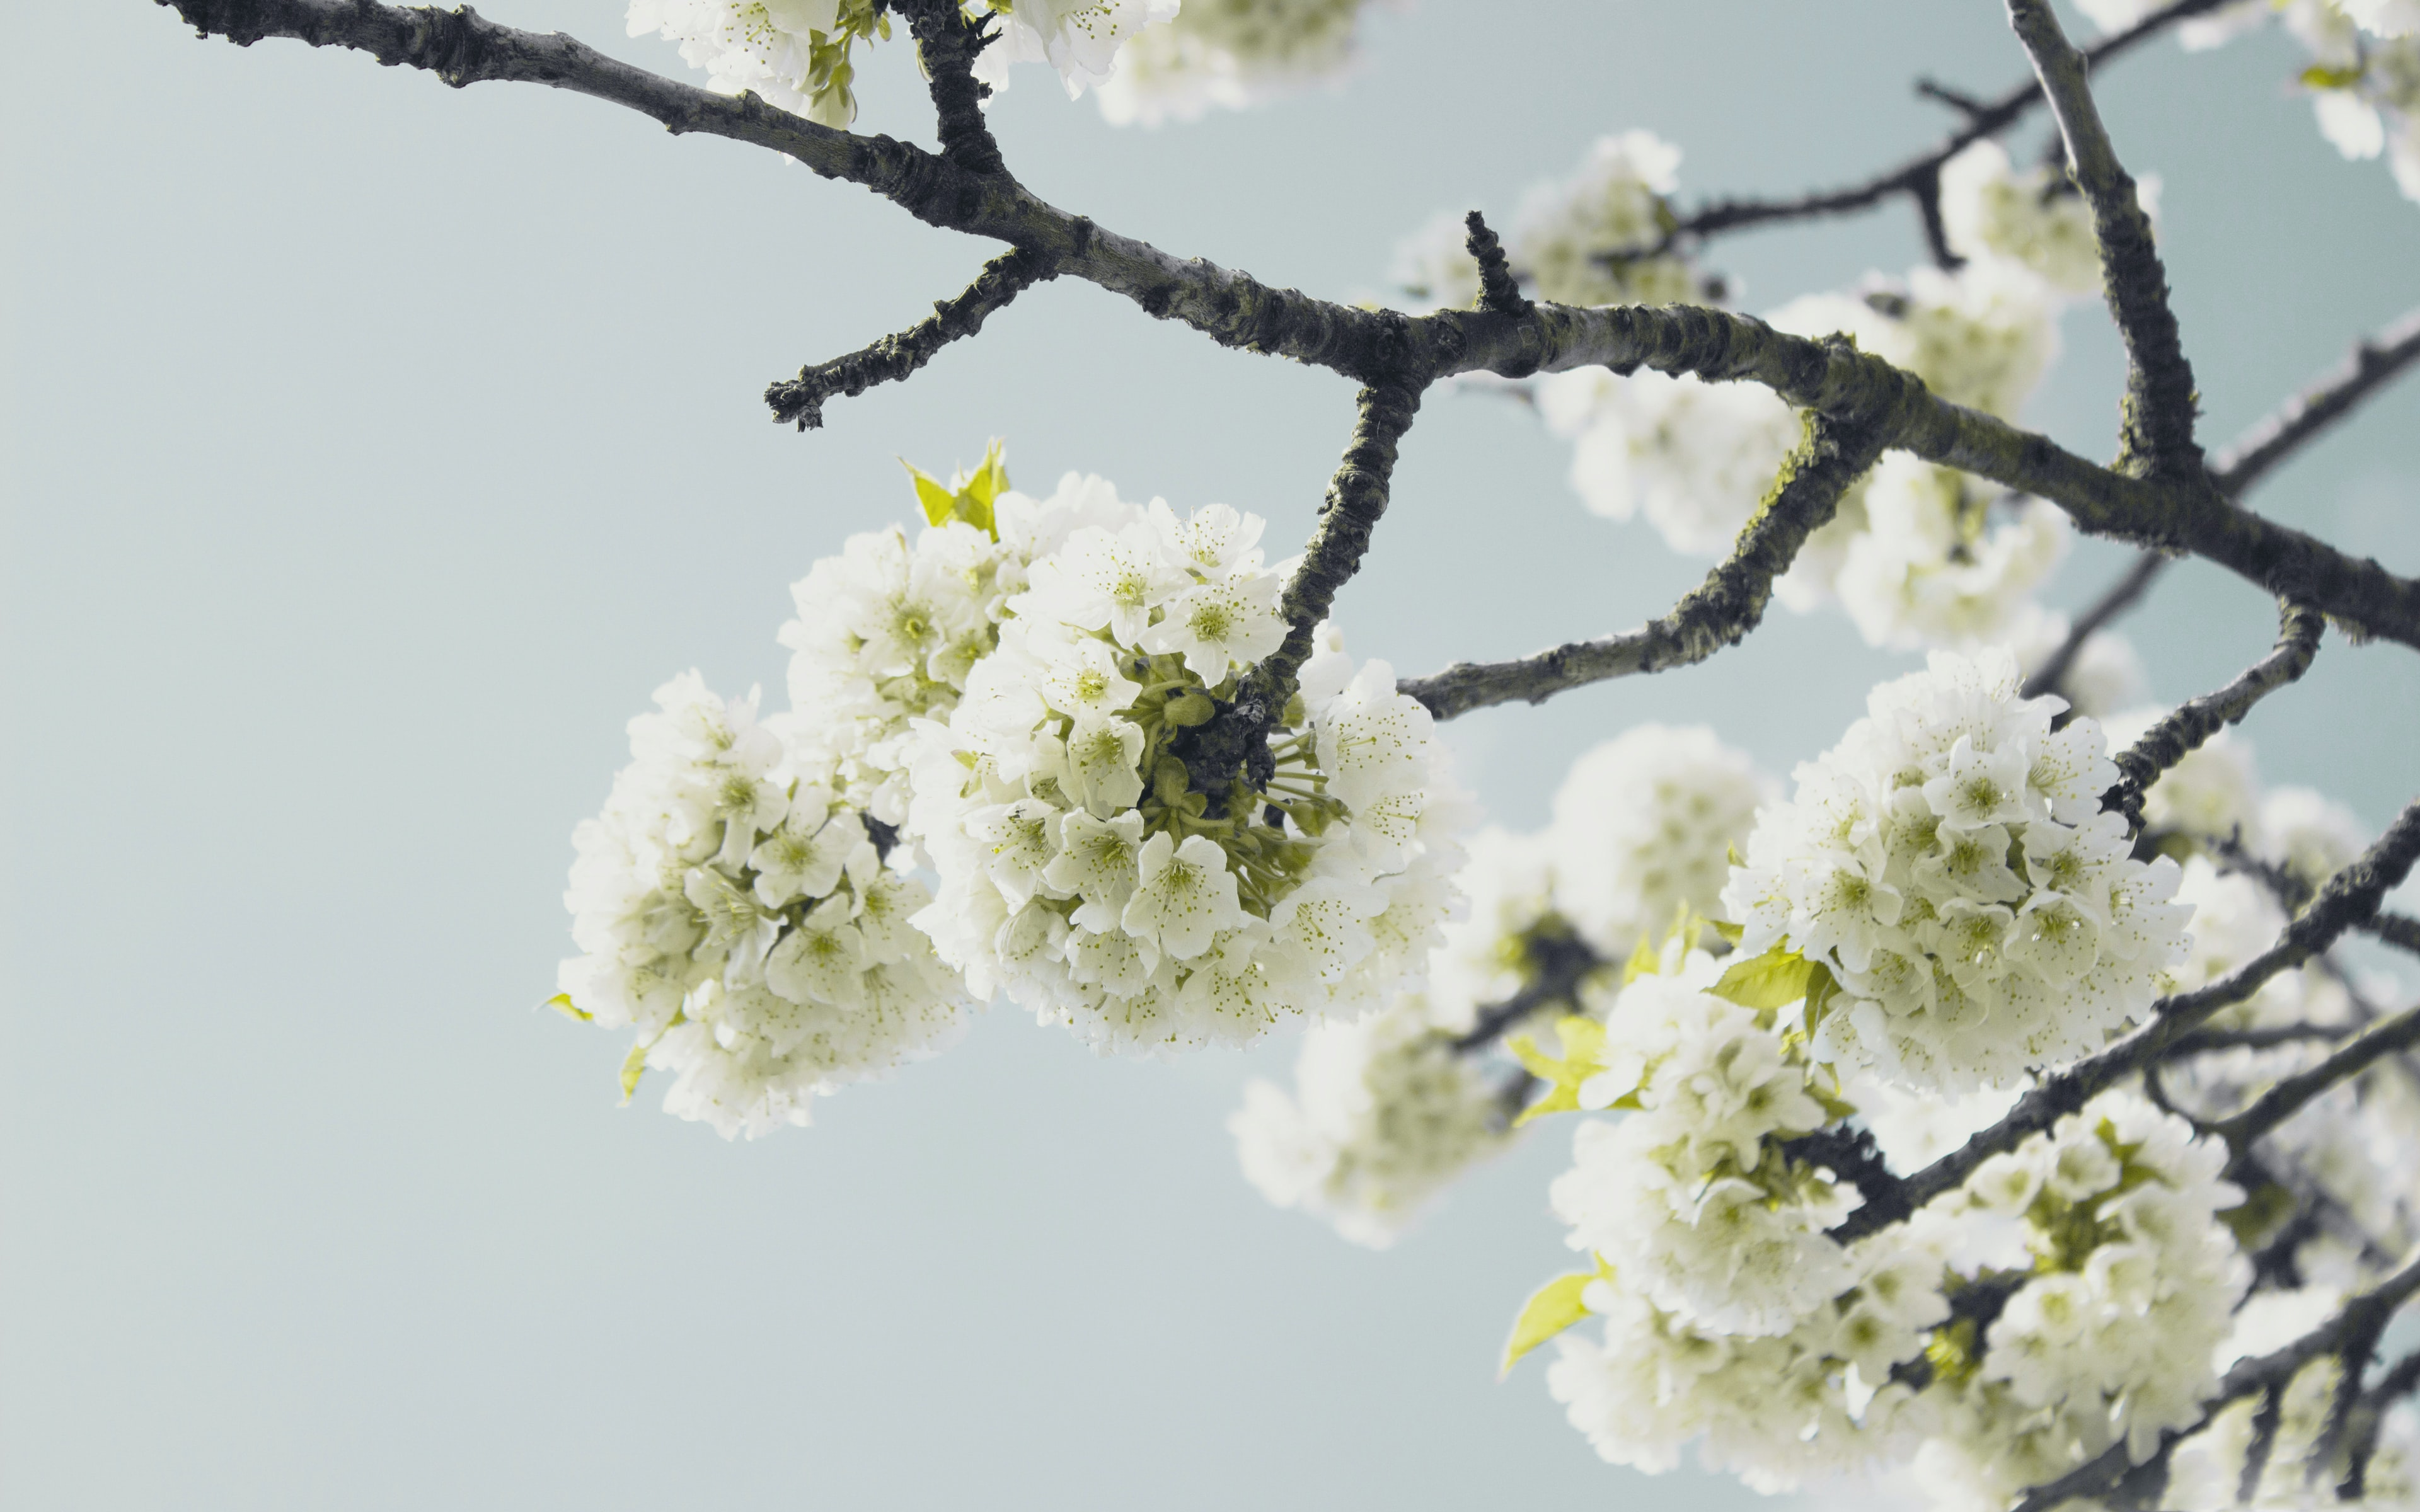 Branch with thick white blossom with clear sky background in Spring